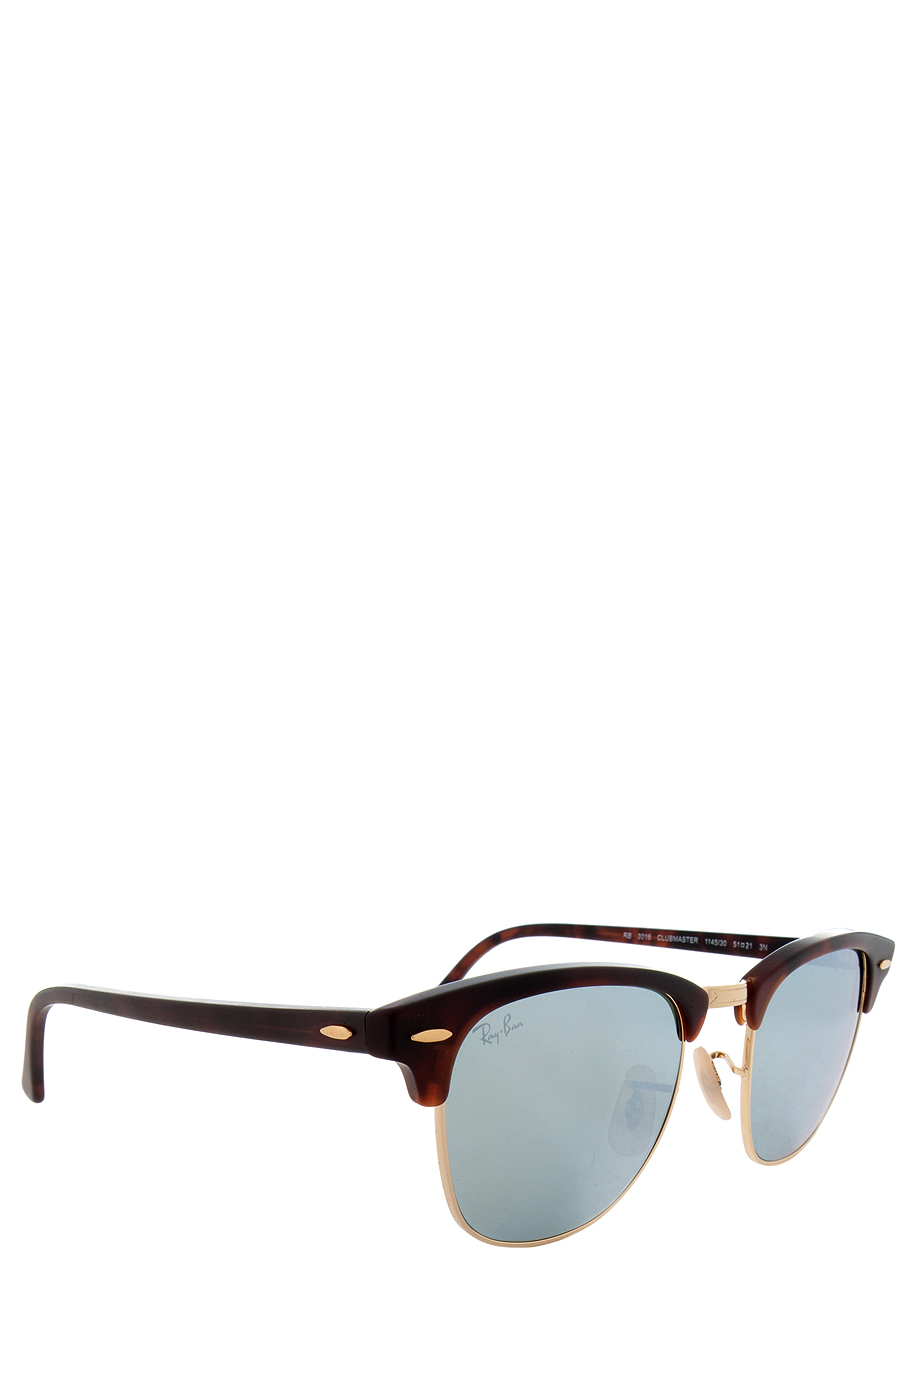 a17c8c2093 Ray Ban Clubmaster Tortoiseshell Sunglasses